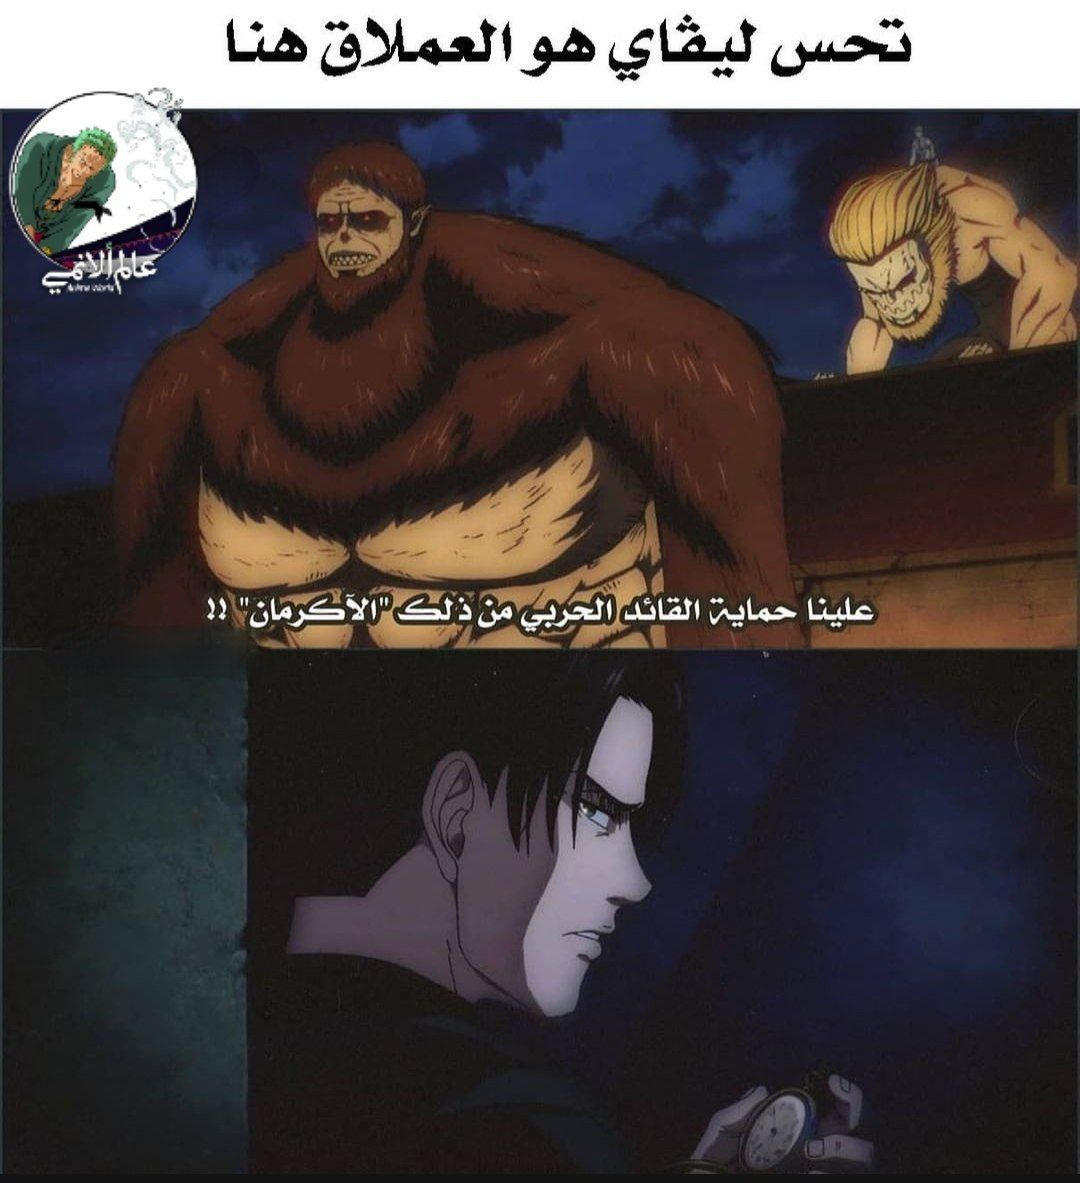 Pin By On Momisᥱ In 2021 Attack On Titan Anime Attack On Titan Anime